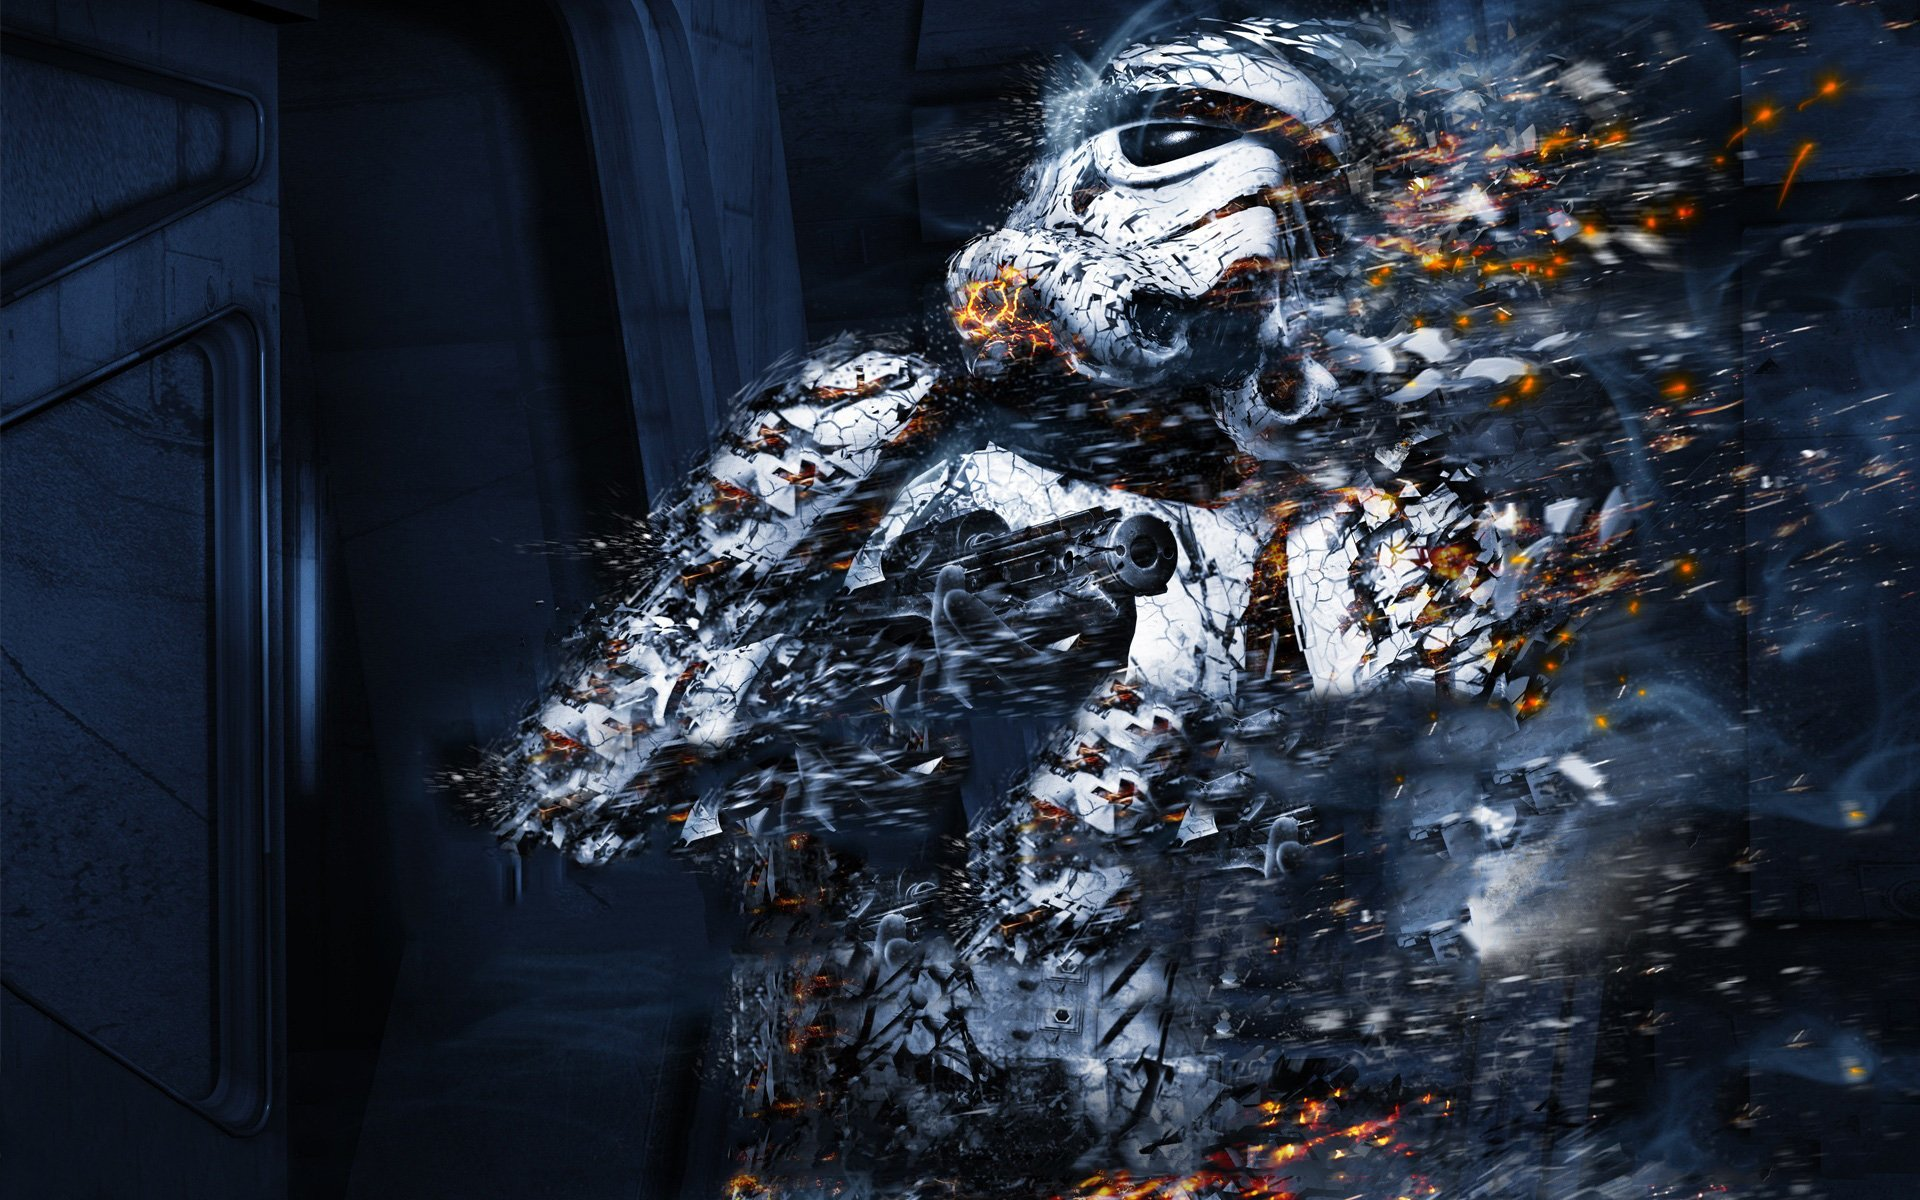 Star Wars Wallpapers 20 X Stunning Artworks Image Gallery Hd